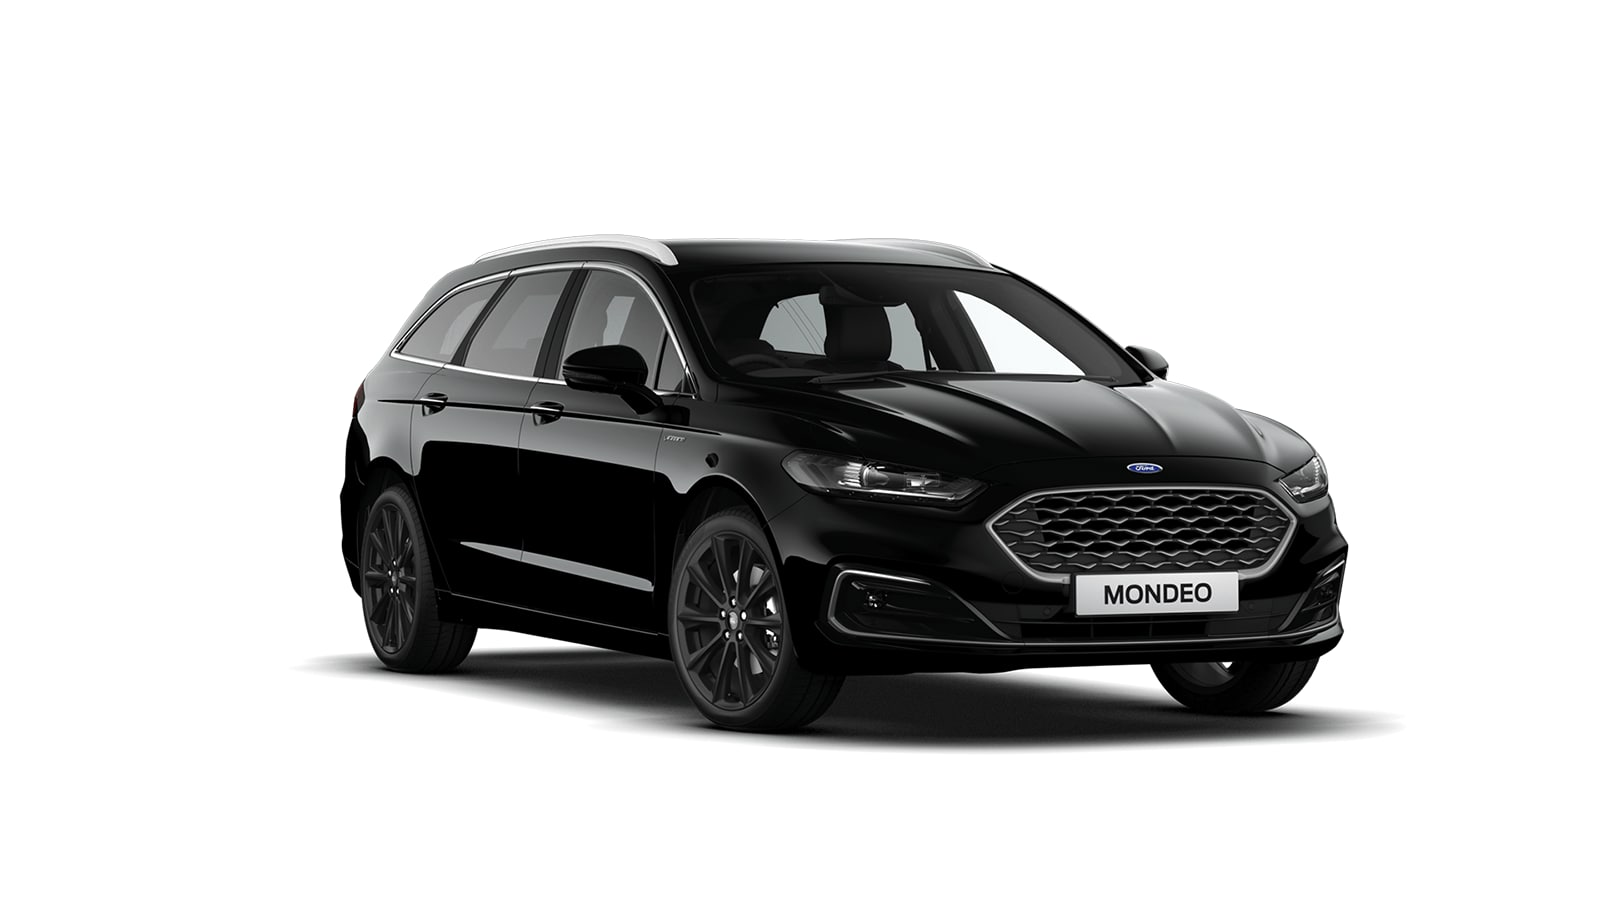 Ford Mondeo Vignale 2.0L EcoBlue 190PS at Browne & Day